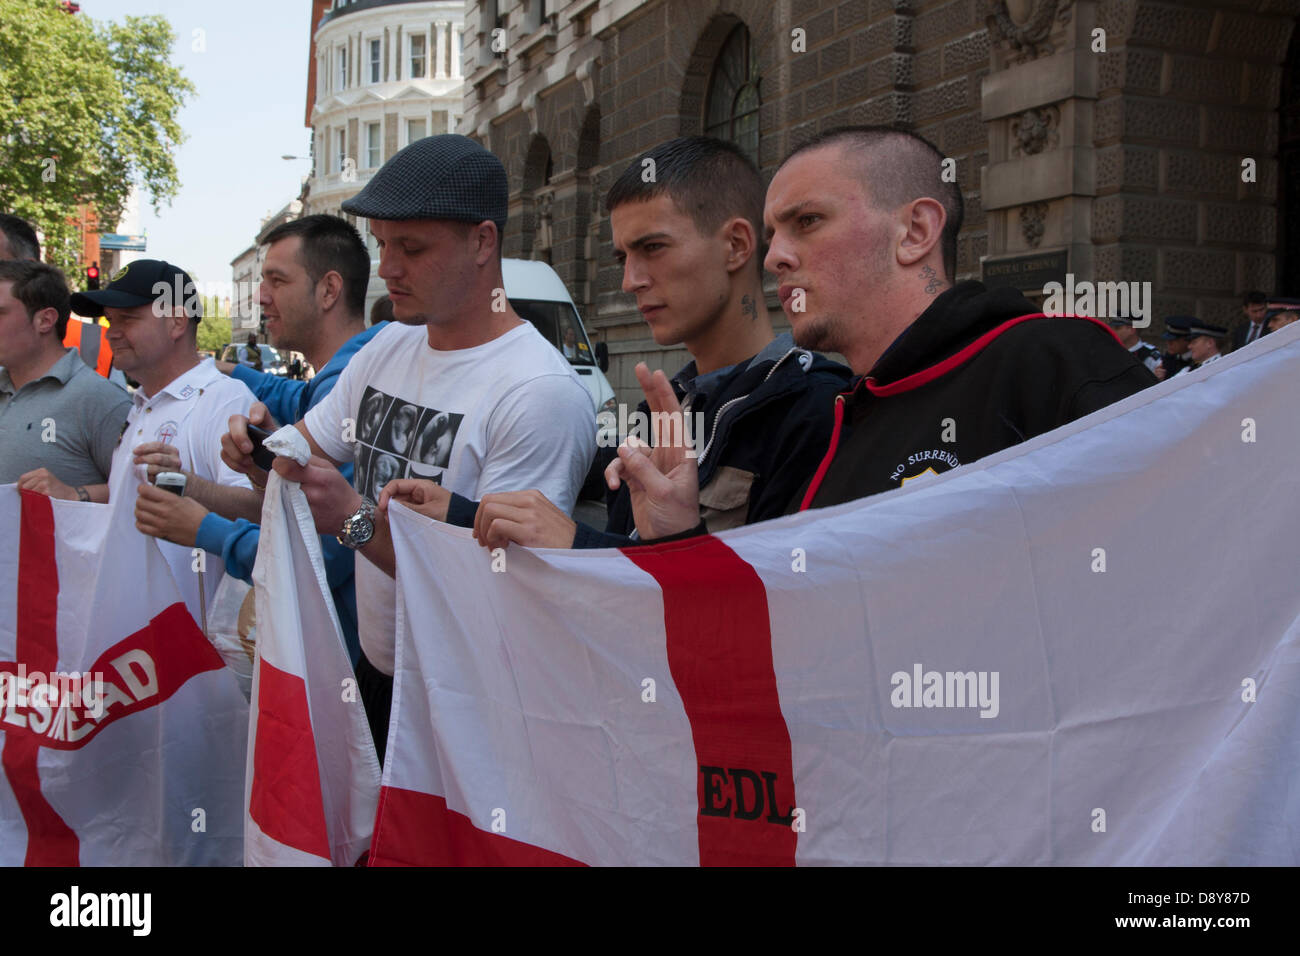 London, UK. 6th June 2013. EDL activists await news of the trial of six Islamic Extremists who attempted to blow - Stock Image